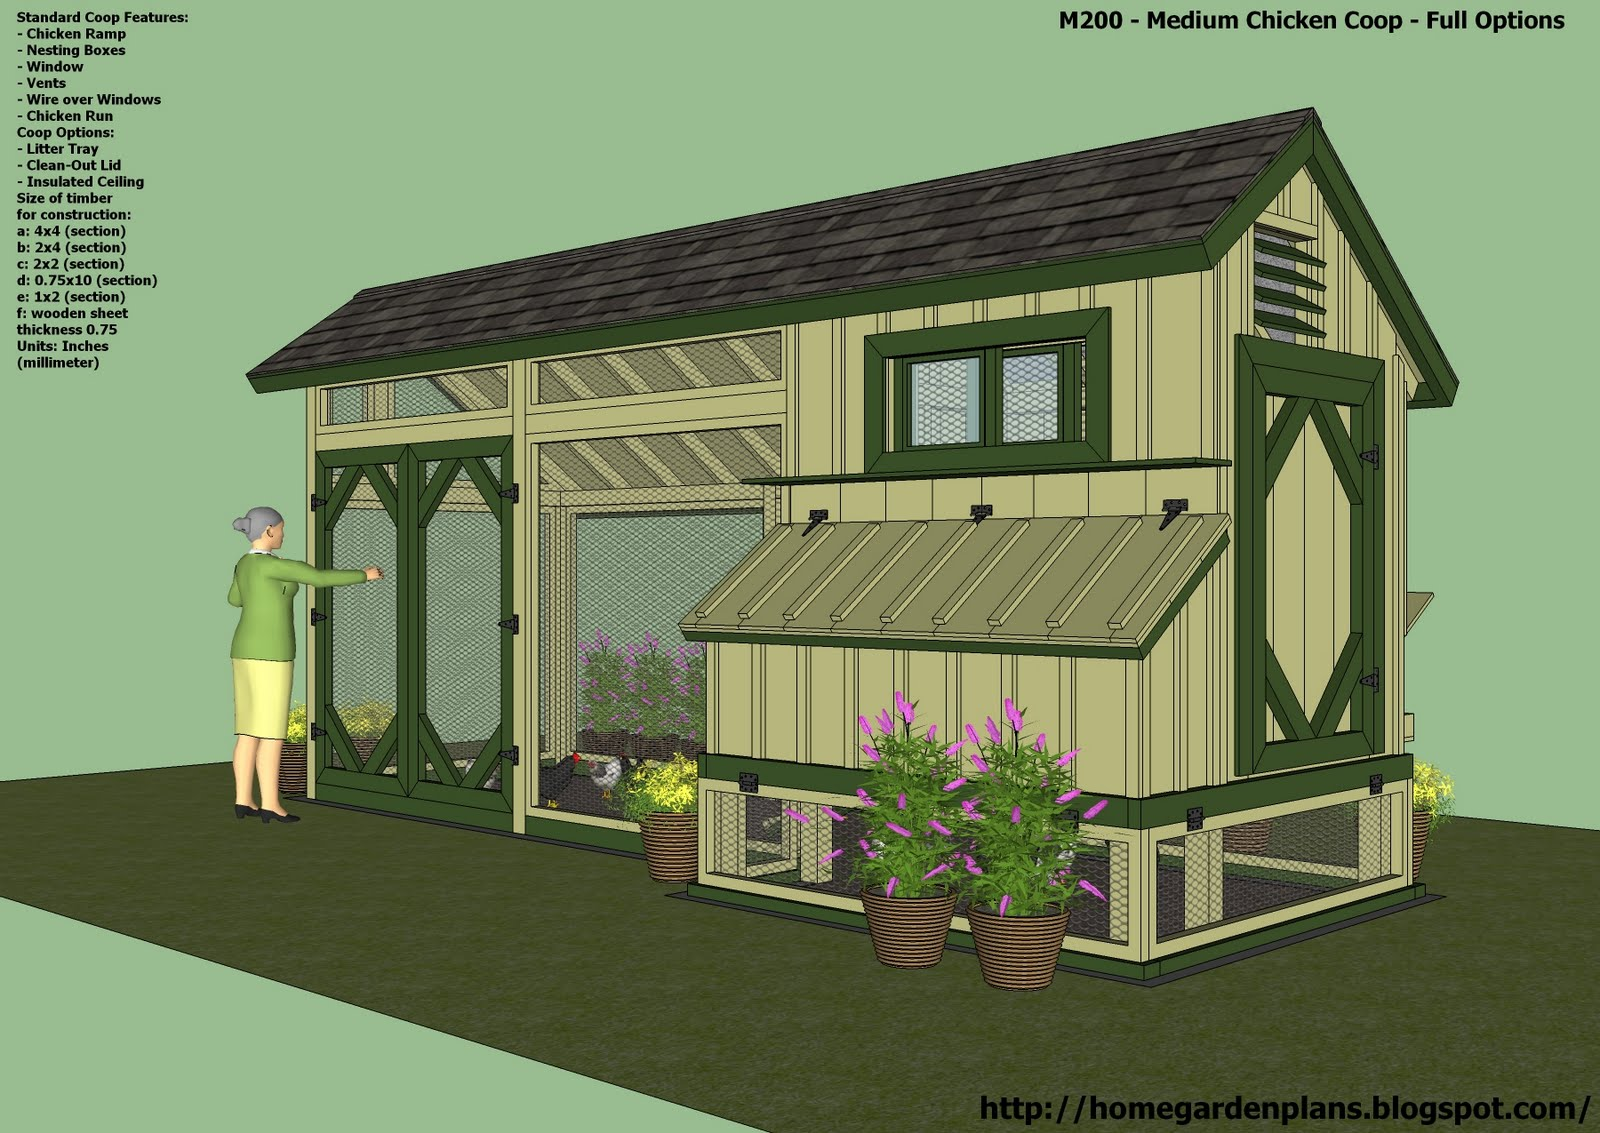 How to build a chicken coop design your own or use ready for Chicken coop house plans